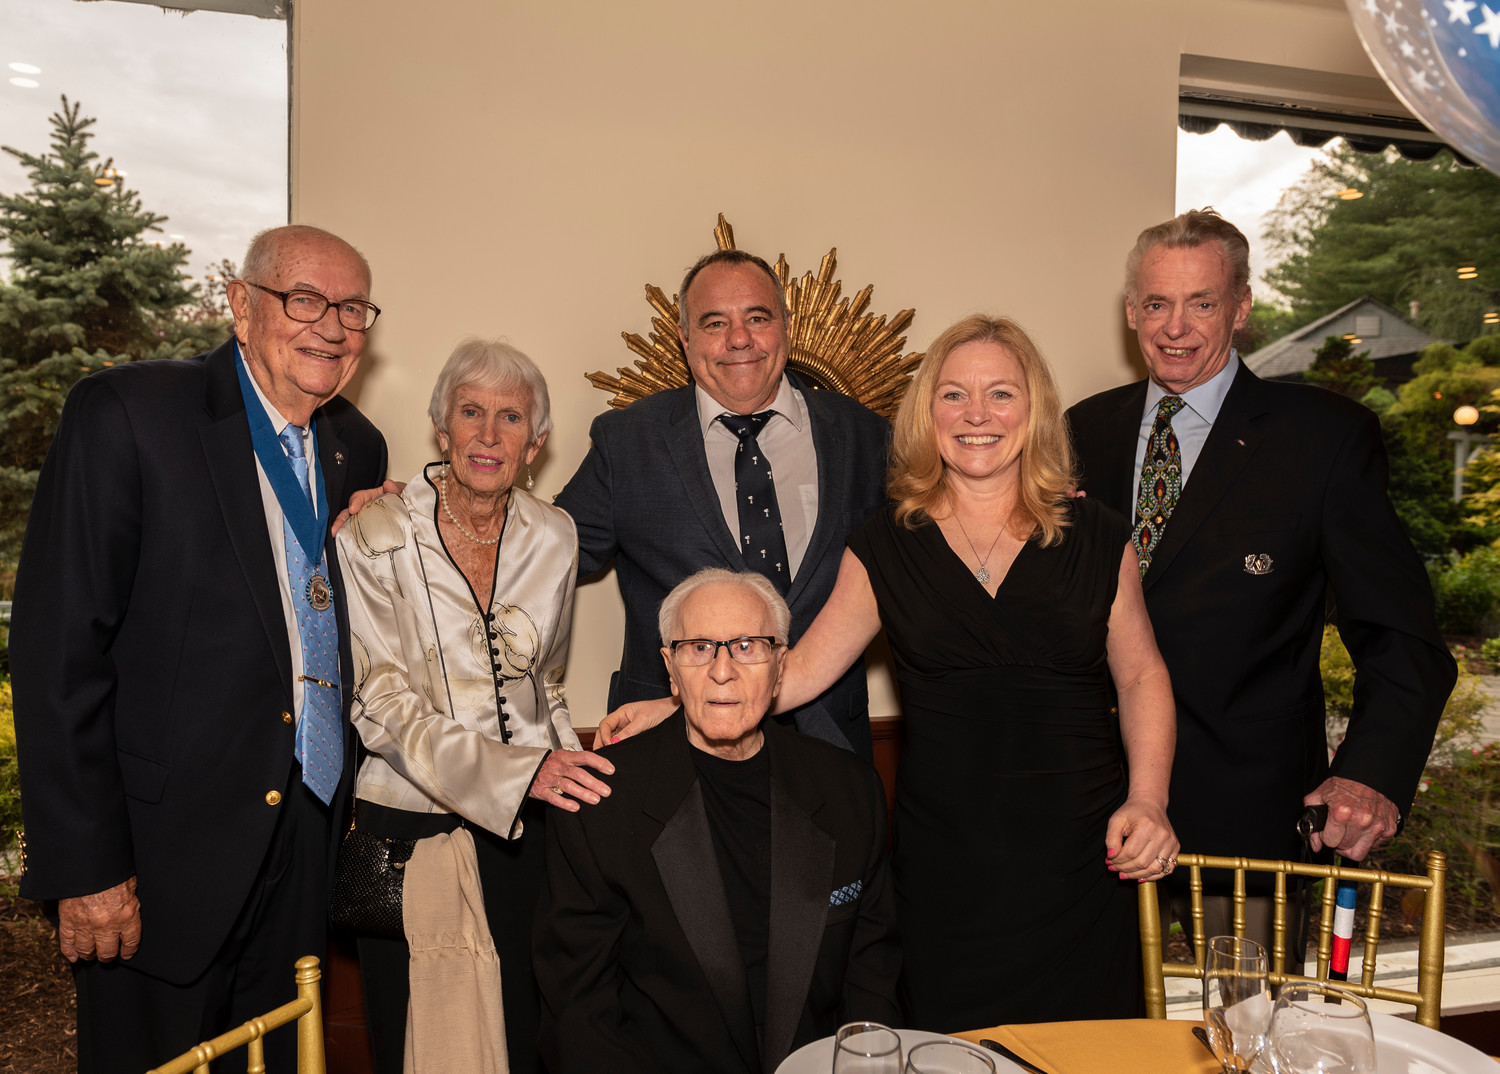 Ernie Franck, a chartering member, far left, with Ellen Franck, John Kle, Leslie Kle, Scott Whitting and Arthur Hubbs at the Kiwanis Jubilee.